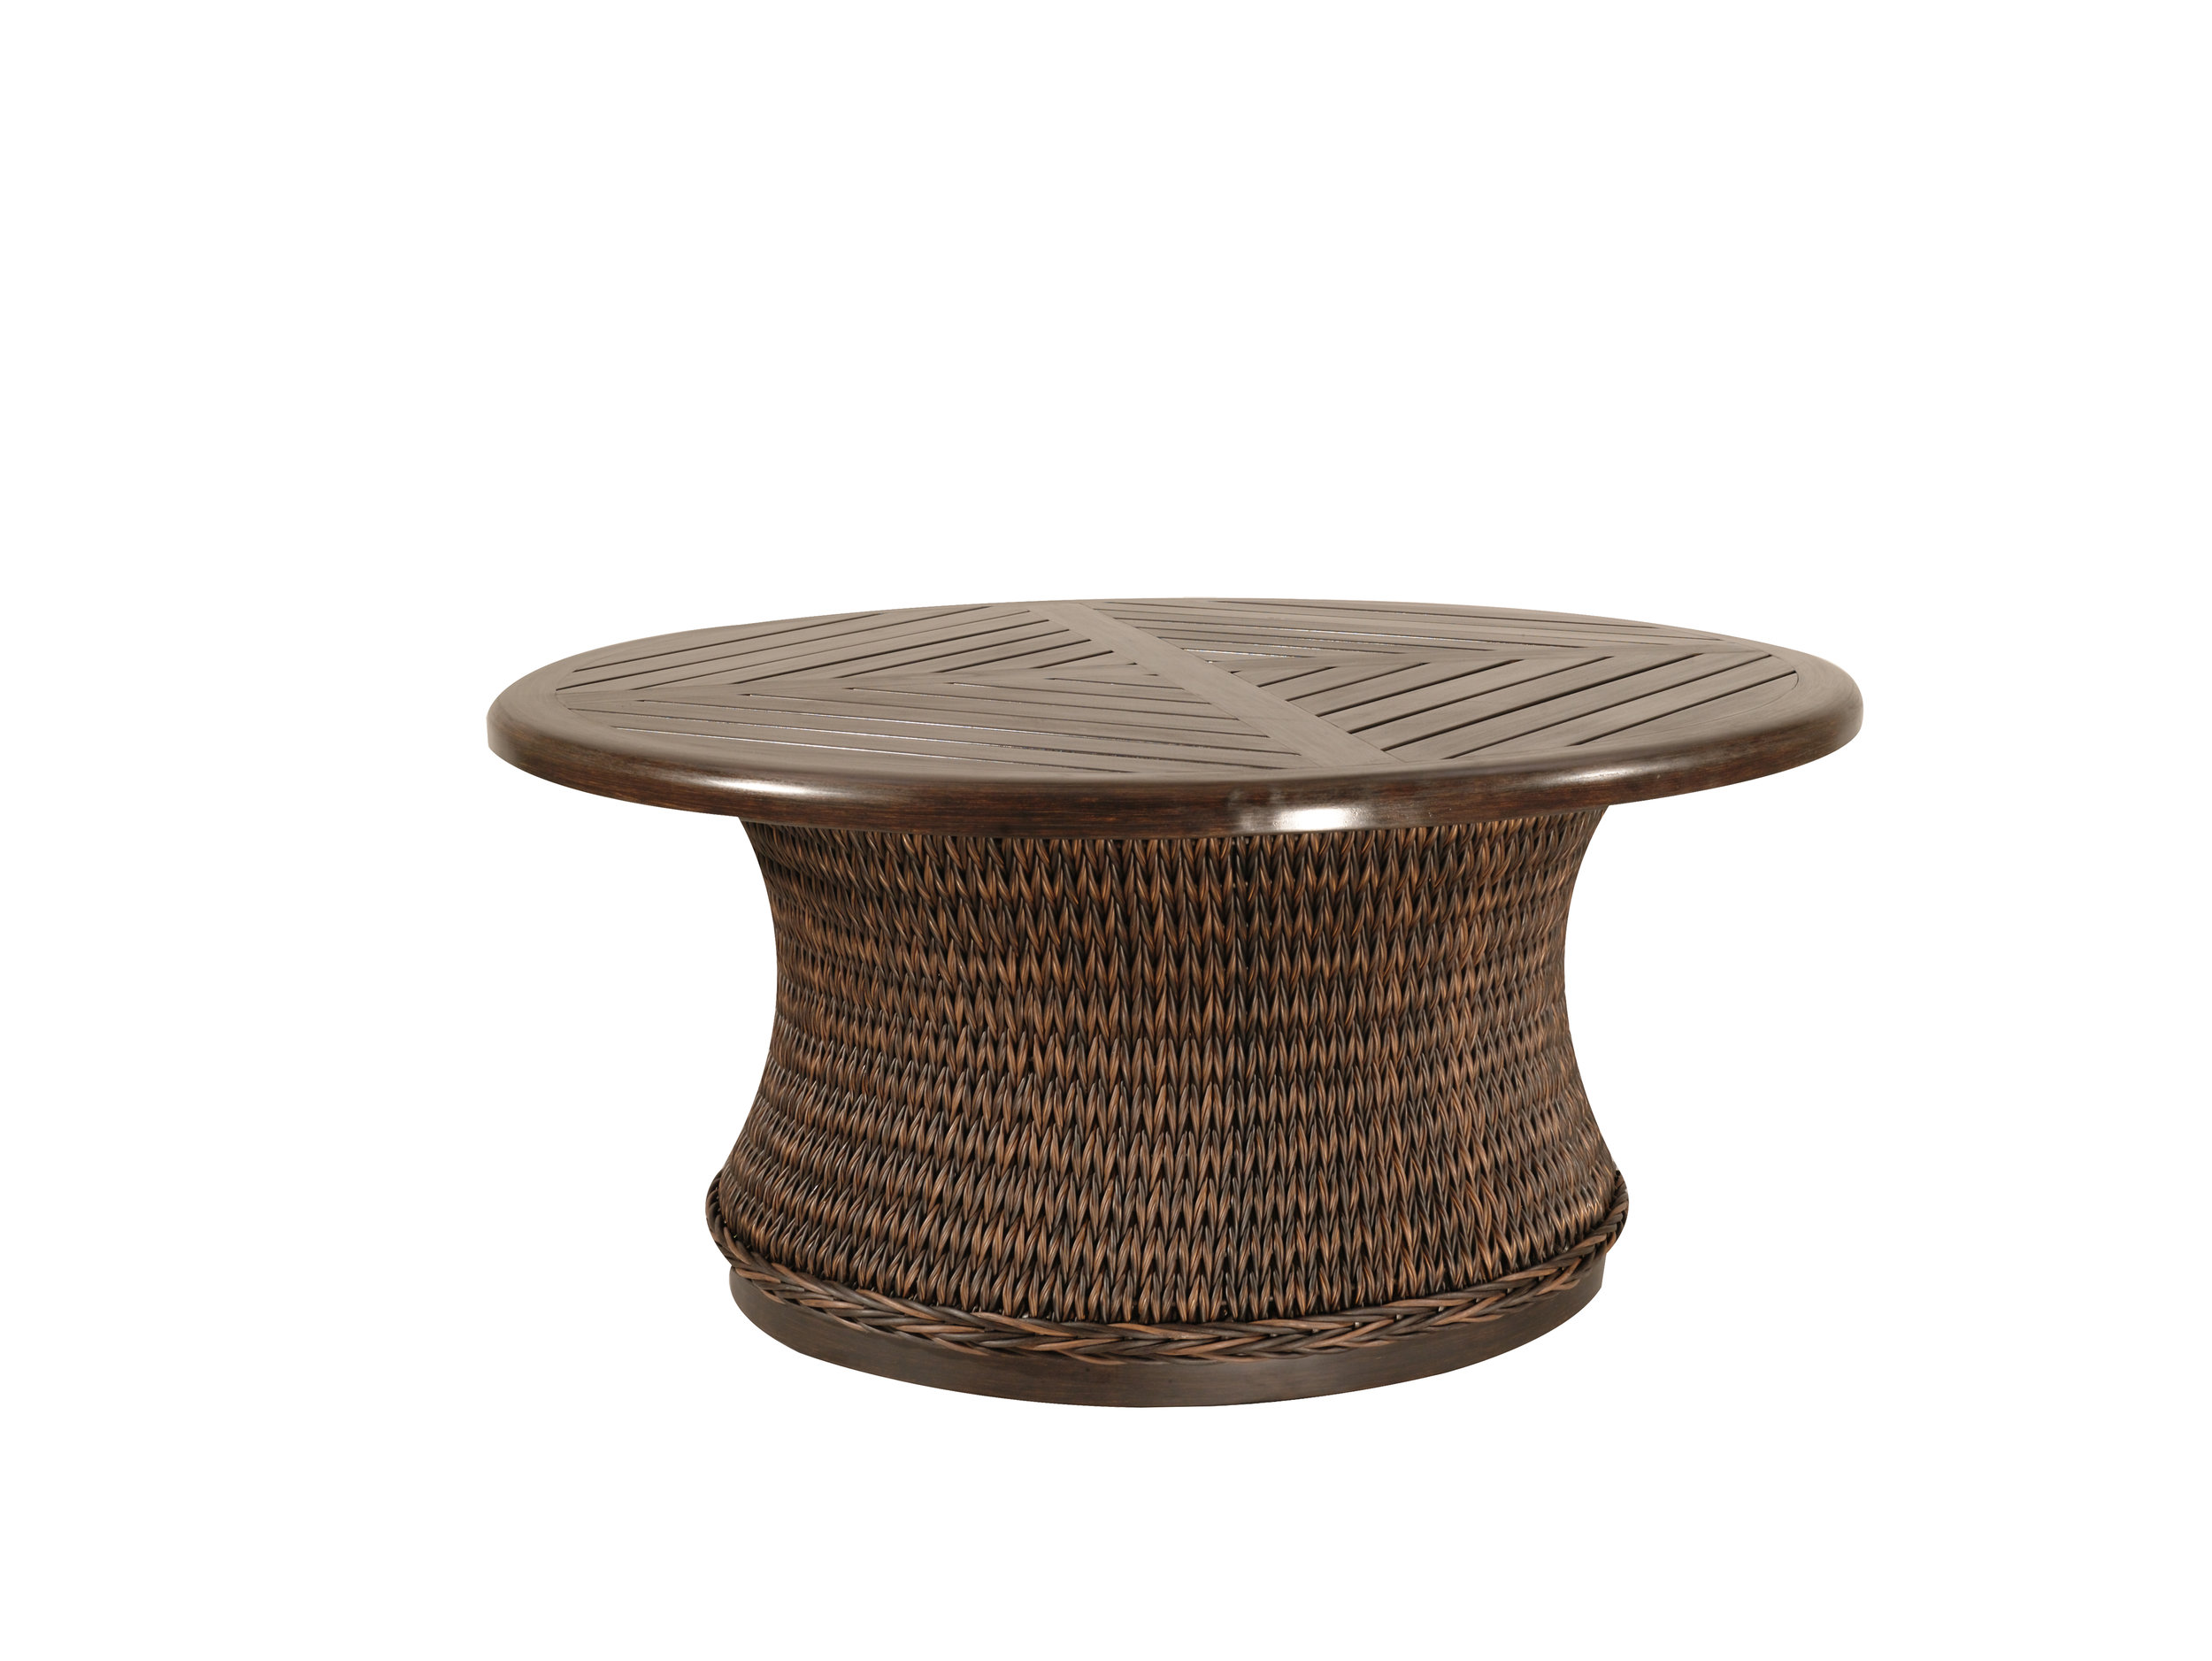 "973036B Monticello Round Woven Coffee Table Base   (Top : W-42R Farnham Aluminum Faux Wood Top)  27.6"" x 27.6"" x 17.5"""